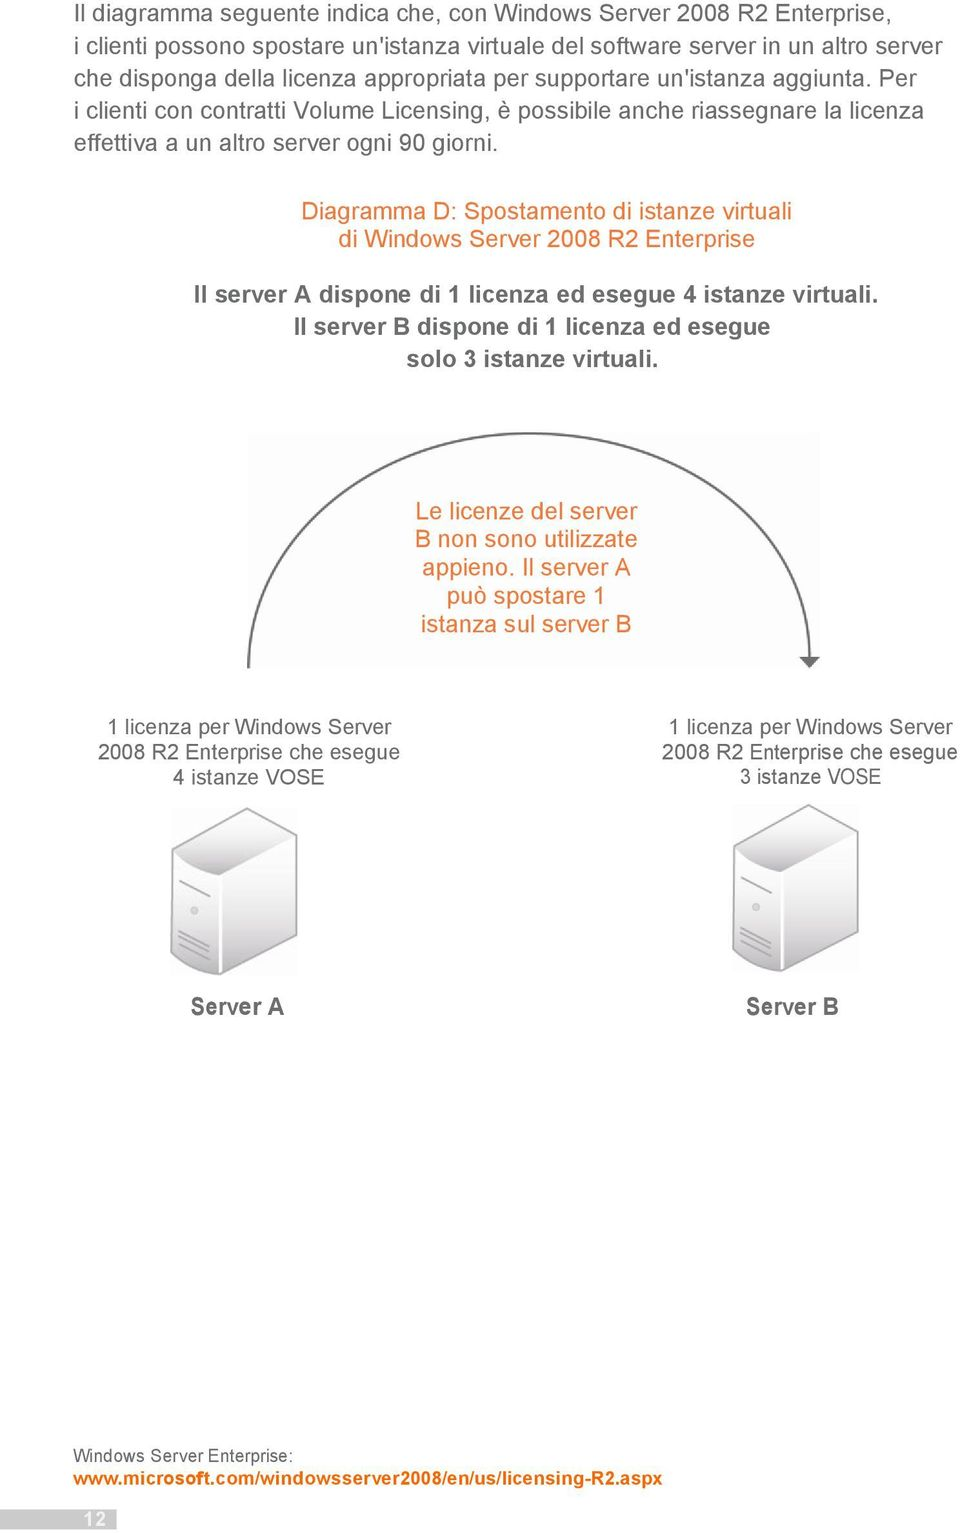 Diagramma D: Spostamento di istanze virtuali di Windows Server 2008 R2 Enterprise Il server A dispone di 1 licenza ed esegue 4 istanze virtuali.